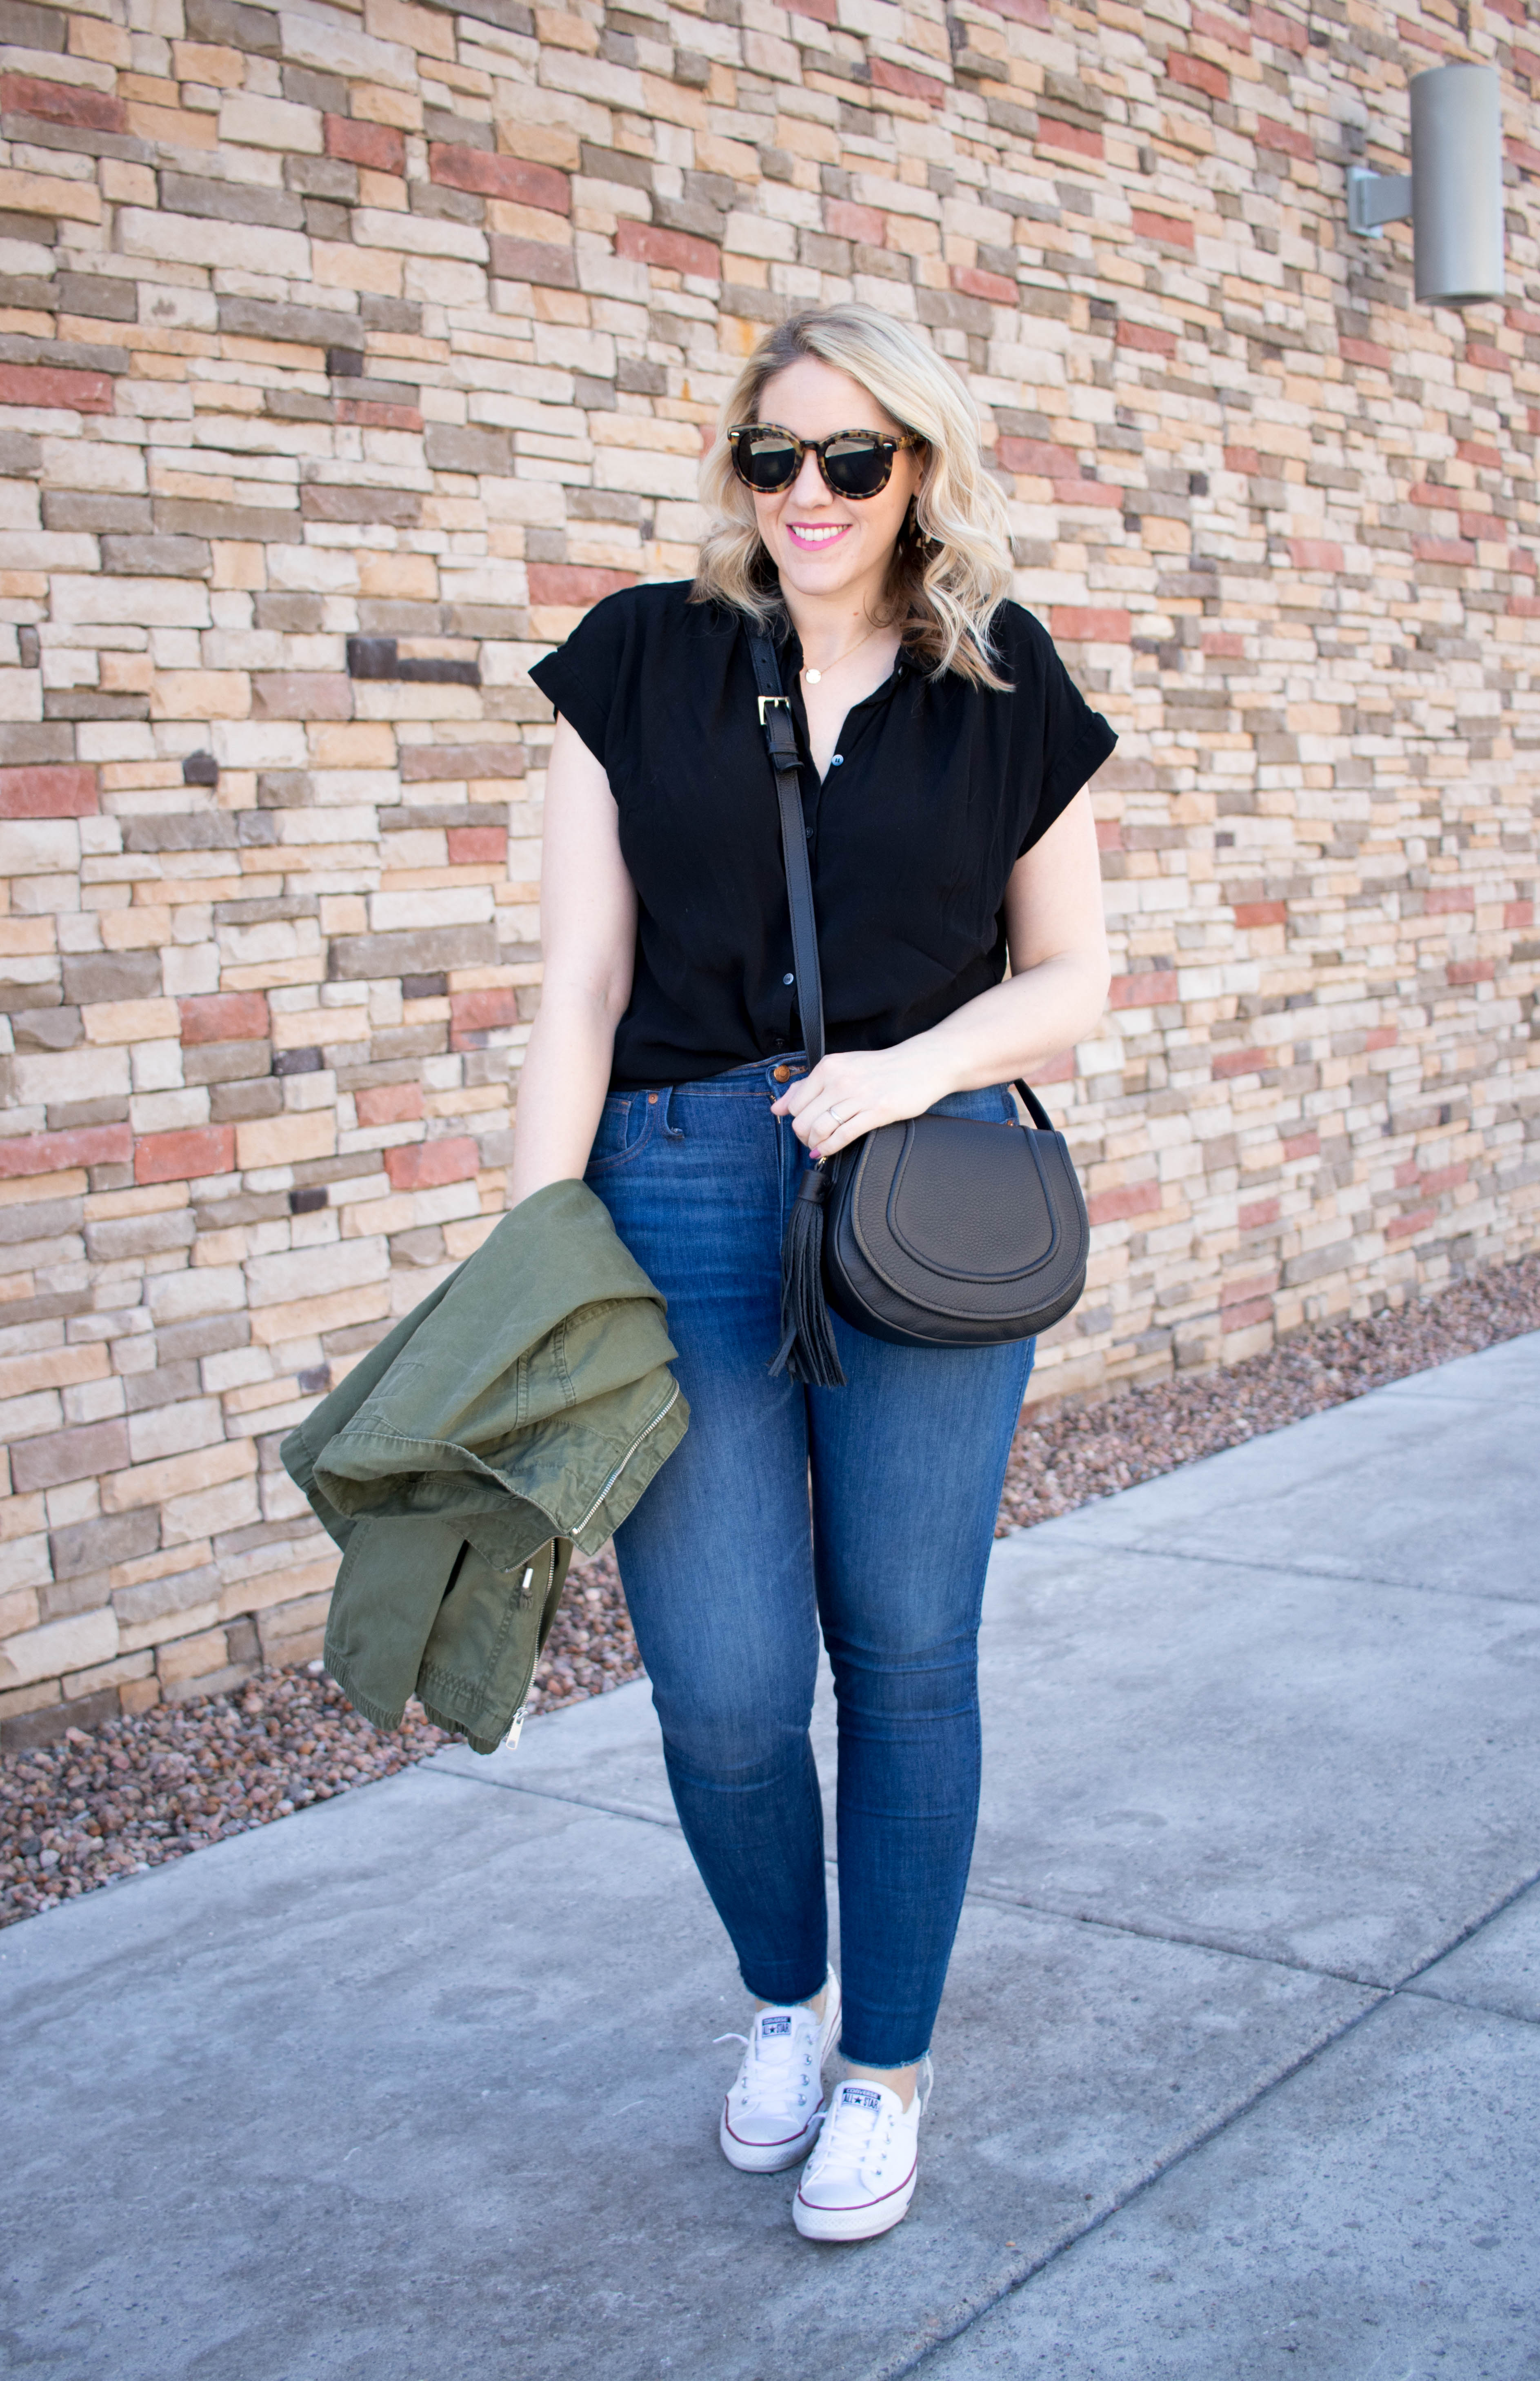 madewell central shirt outfit #madewell #everydaymadewell #momstyle